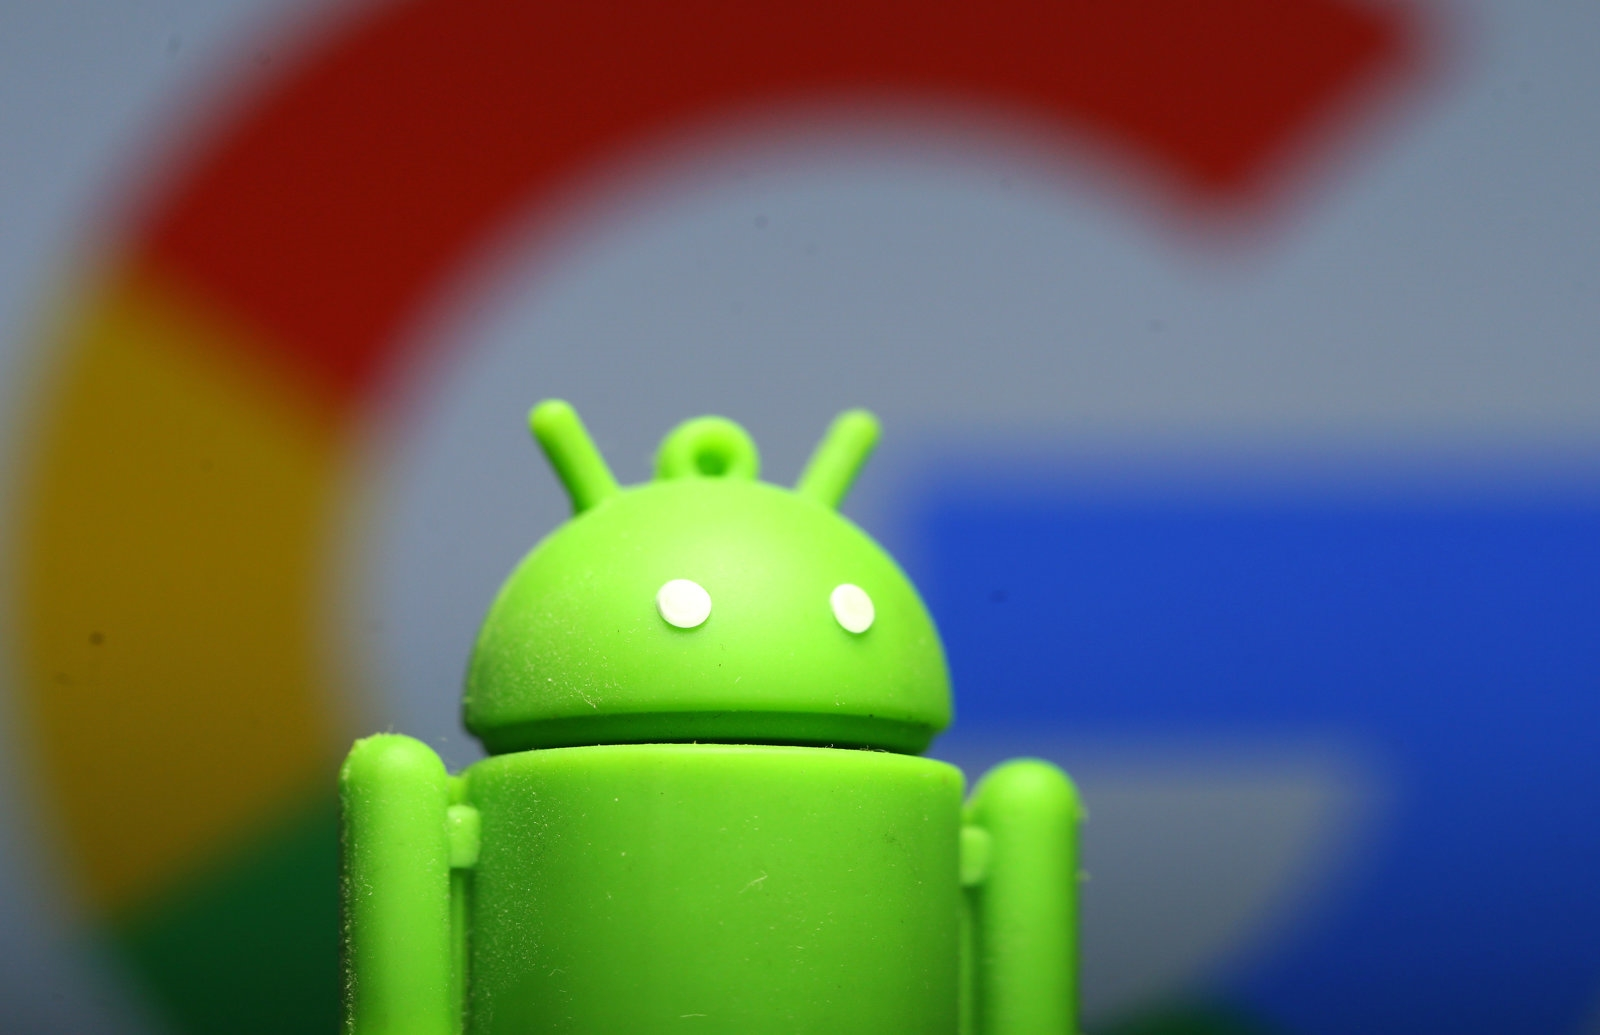 Google adds anti-tampering DRM to Android apps in the Play Store | DeviceDaily.com